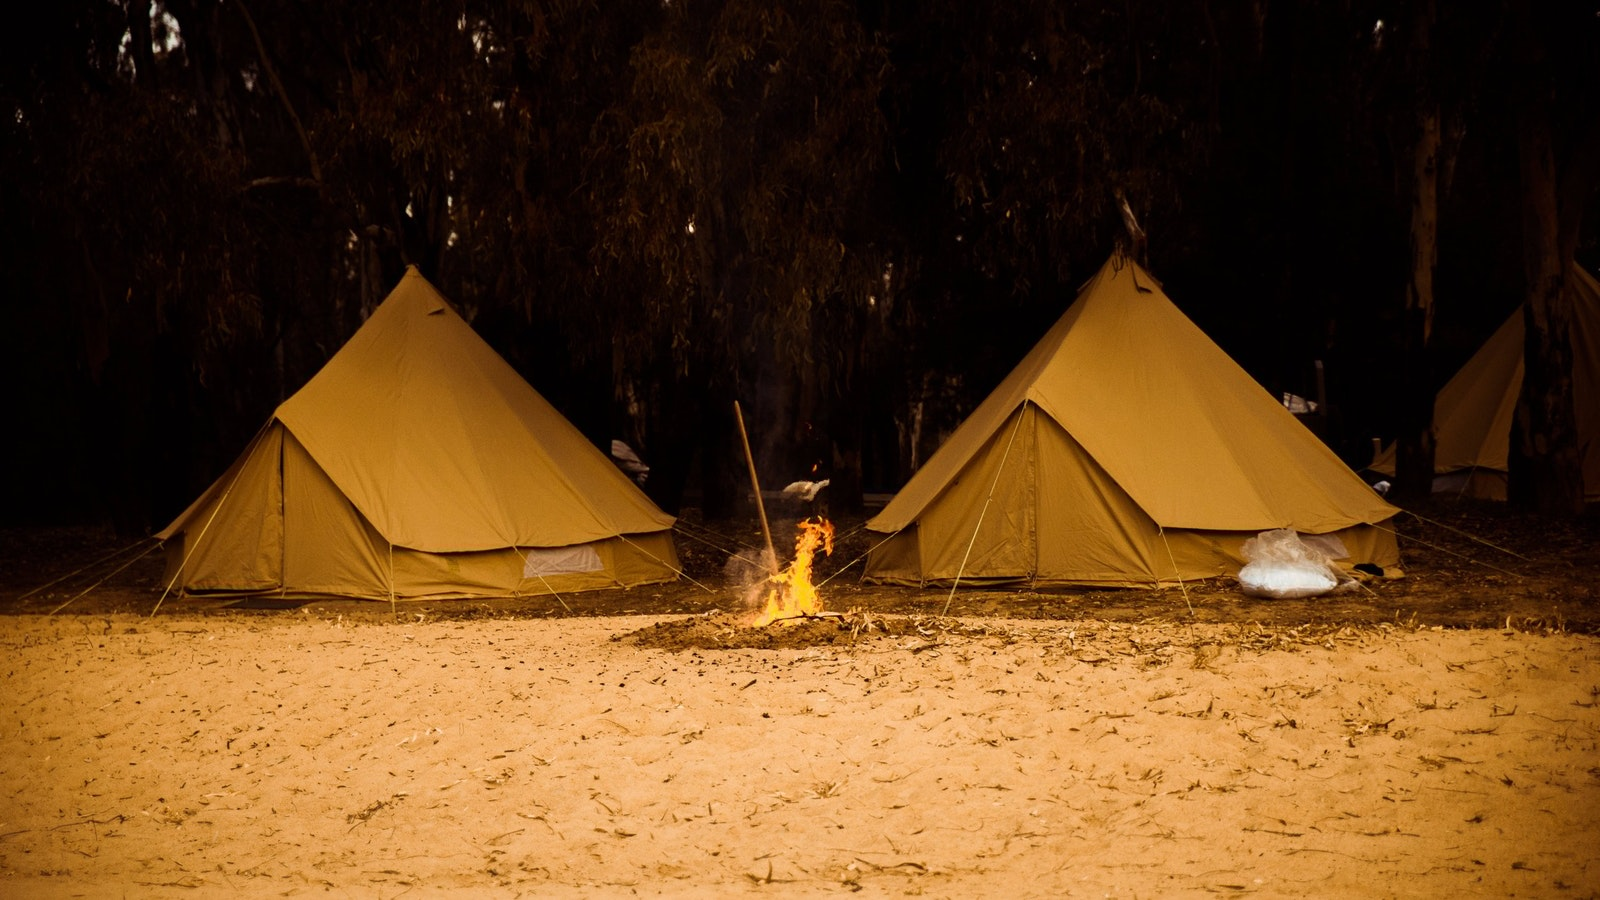 Bell tents, sandbar, fire - the best part after a long day.